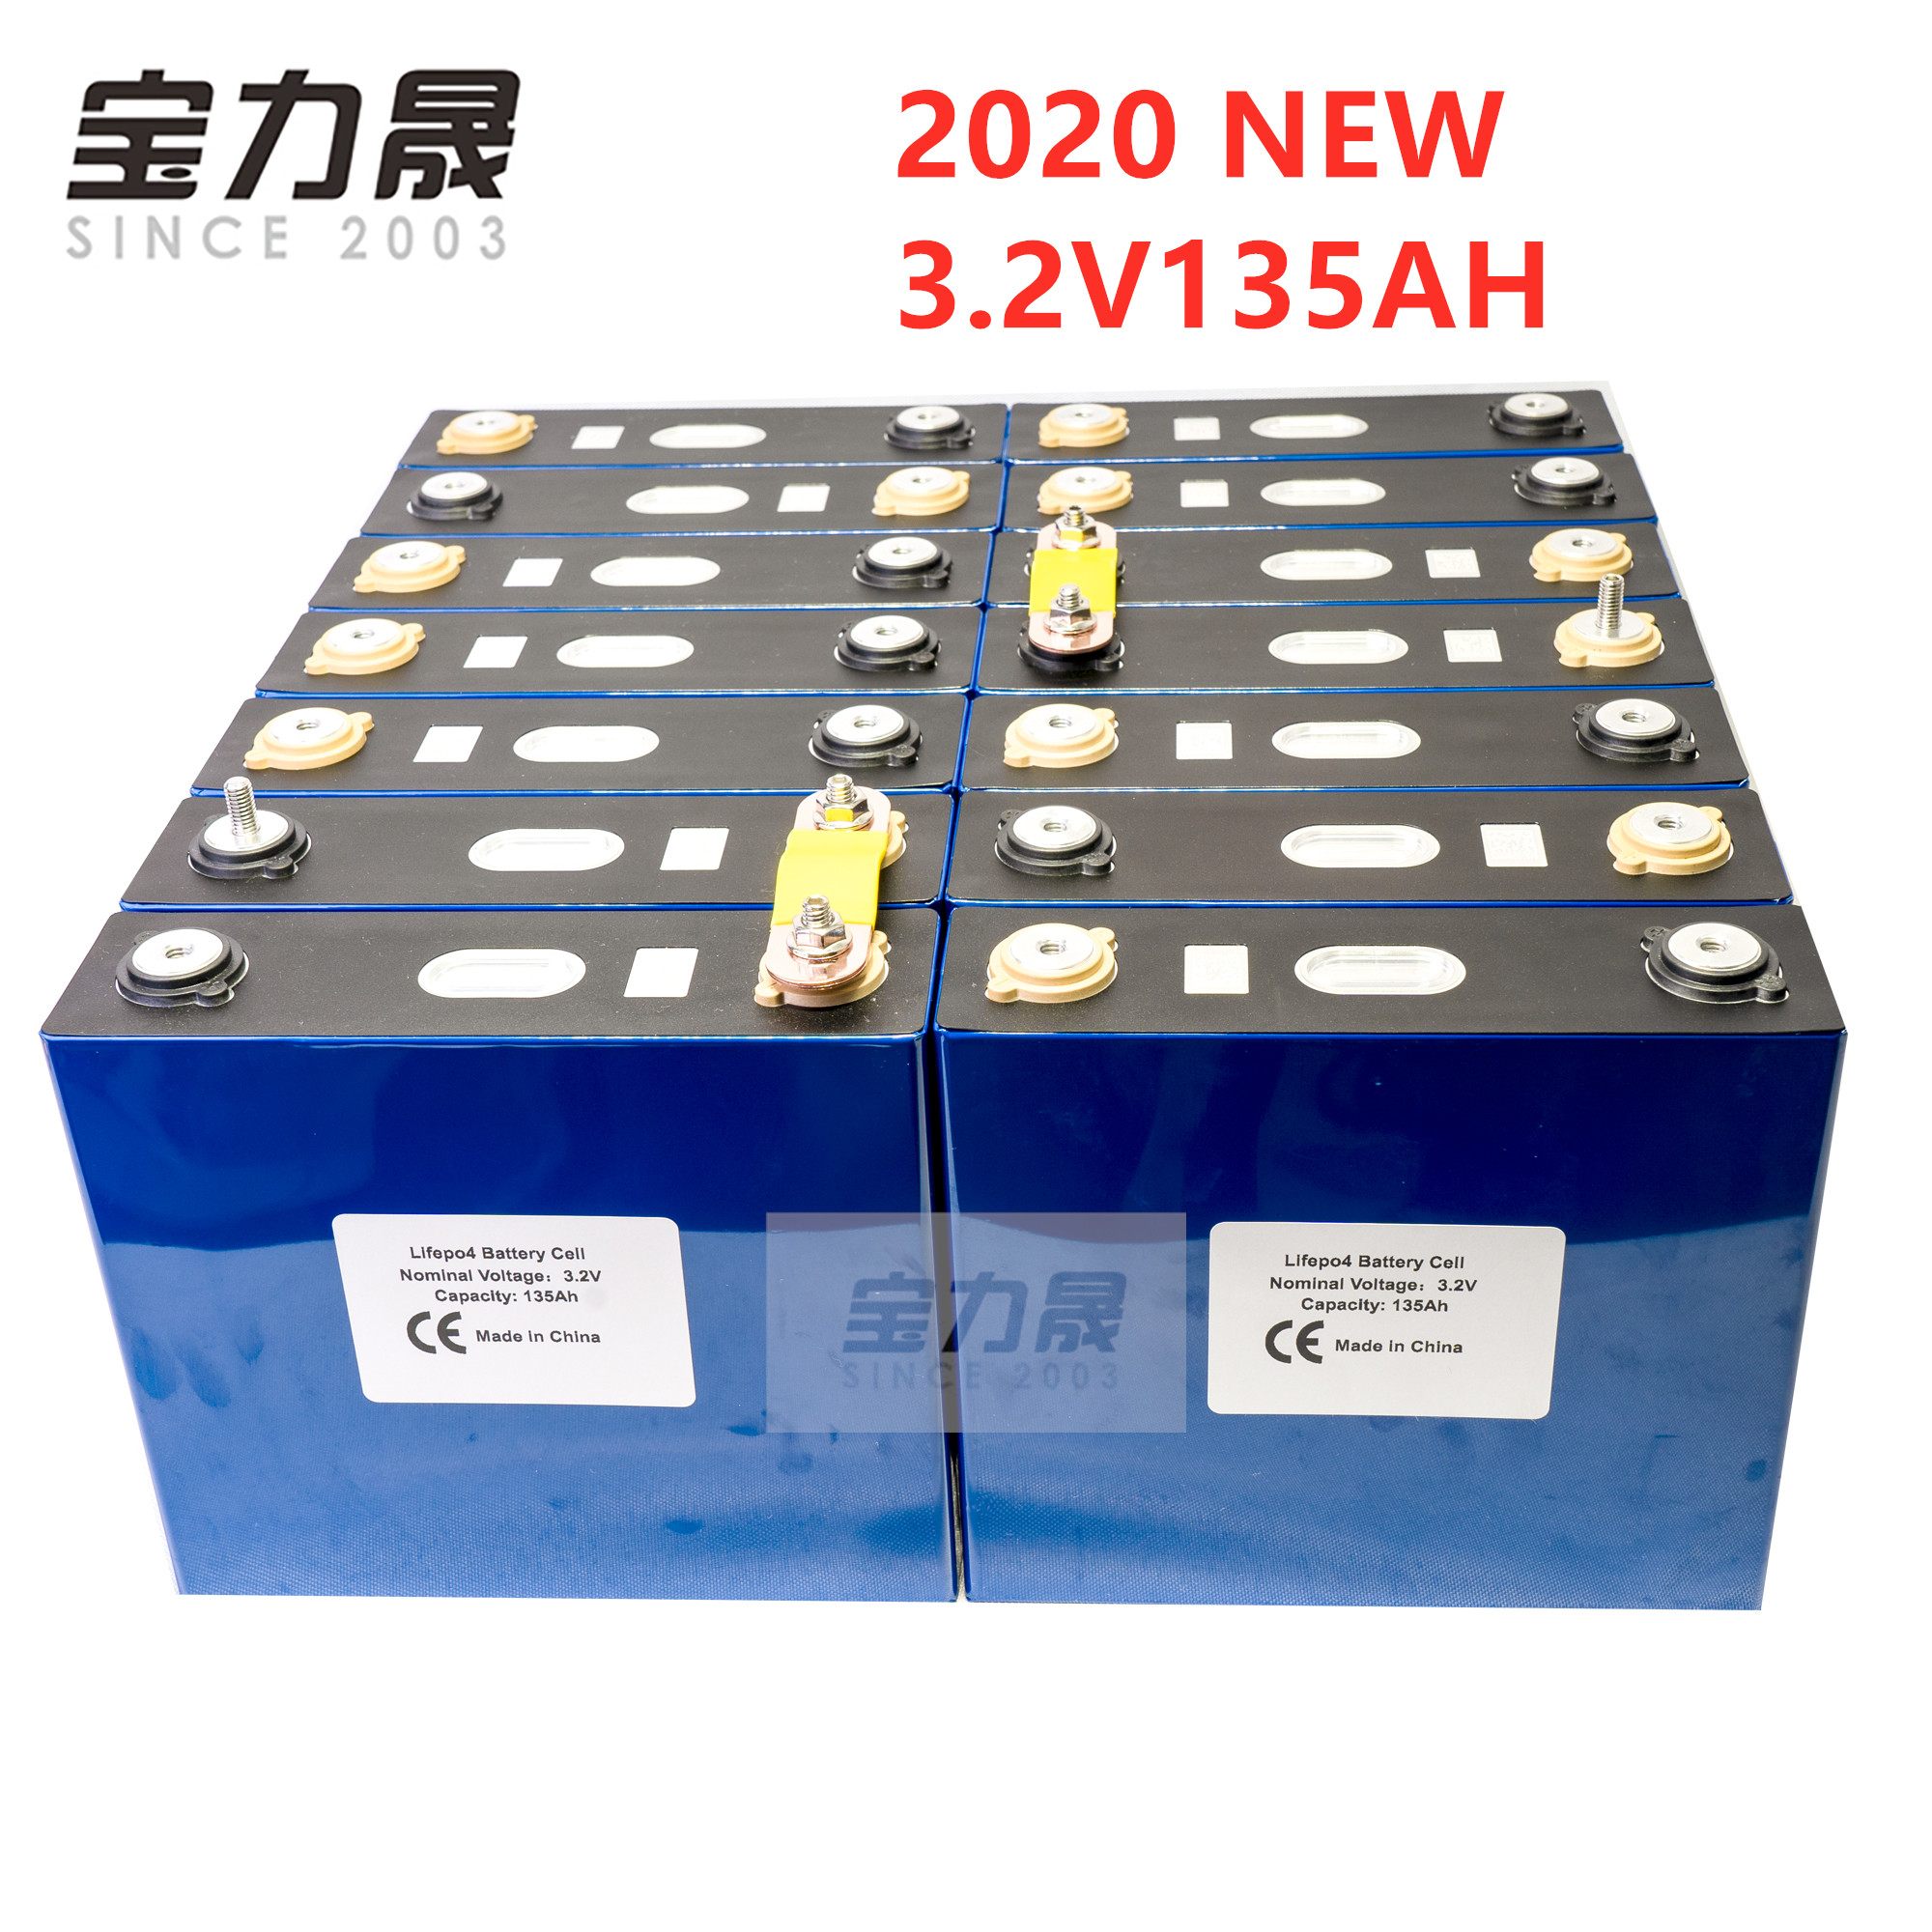 2020 NEW 32PCS 3.2V 135Ah Lithium Iron Phosphate Cell Lifepo4 Battery  Solar 96V135AH 48V120Ah Cells Not 150Ah EU US TAX FREE